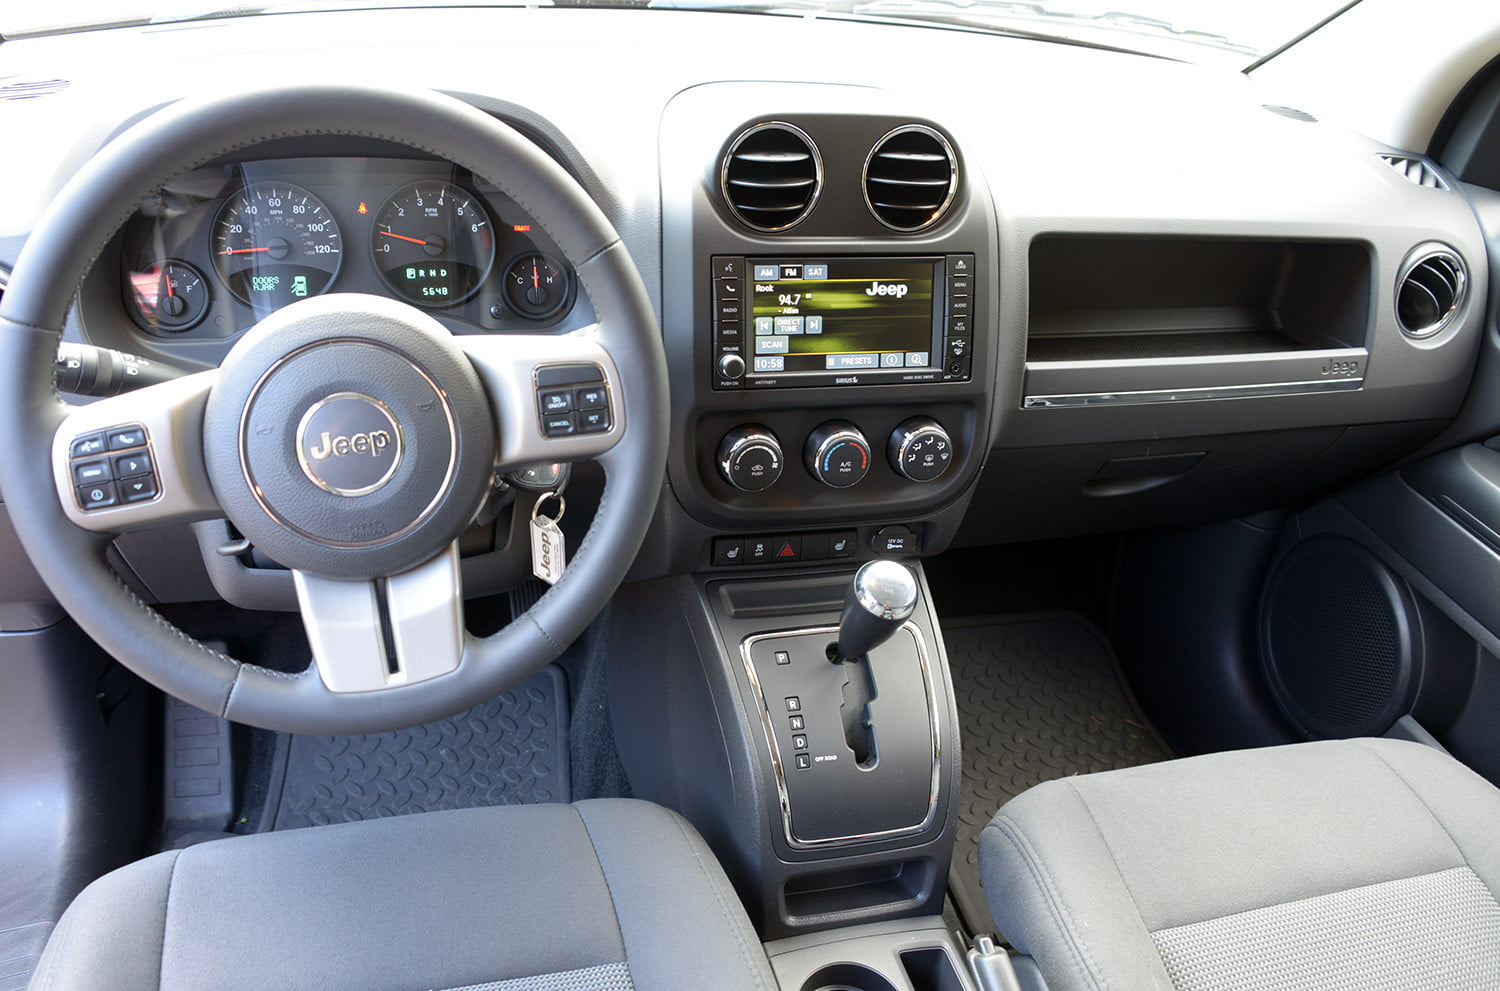 Lovely 2013 Jeep Compass Interior Front 1